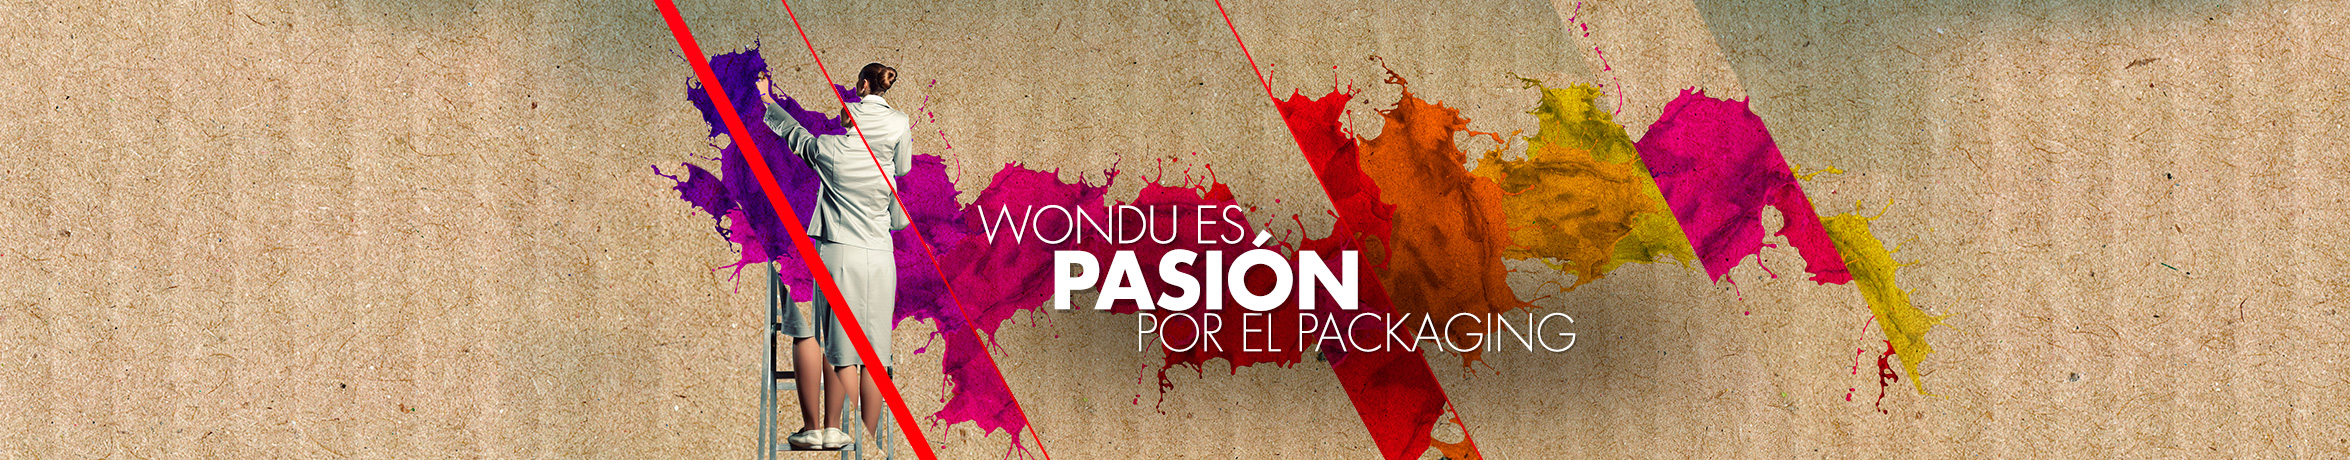 Wondu - Pasión por el packaging